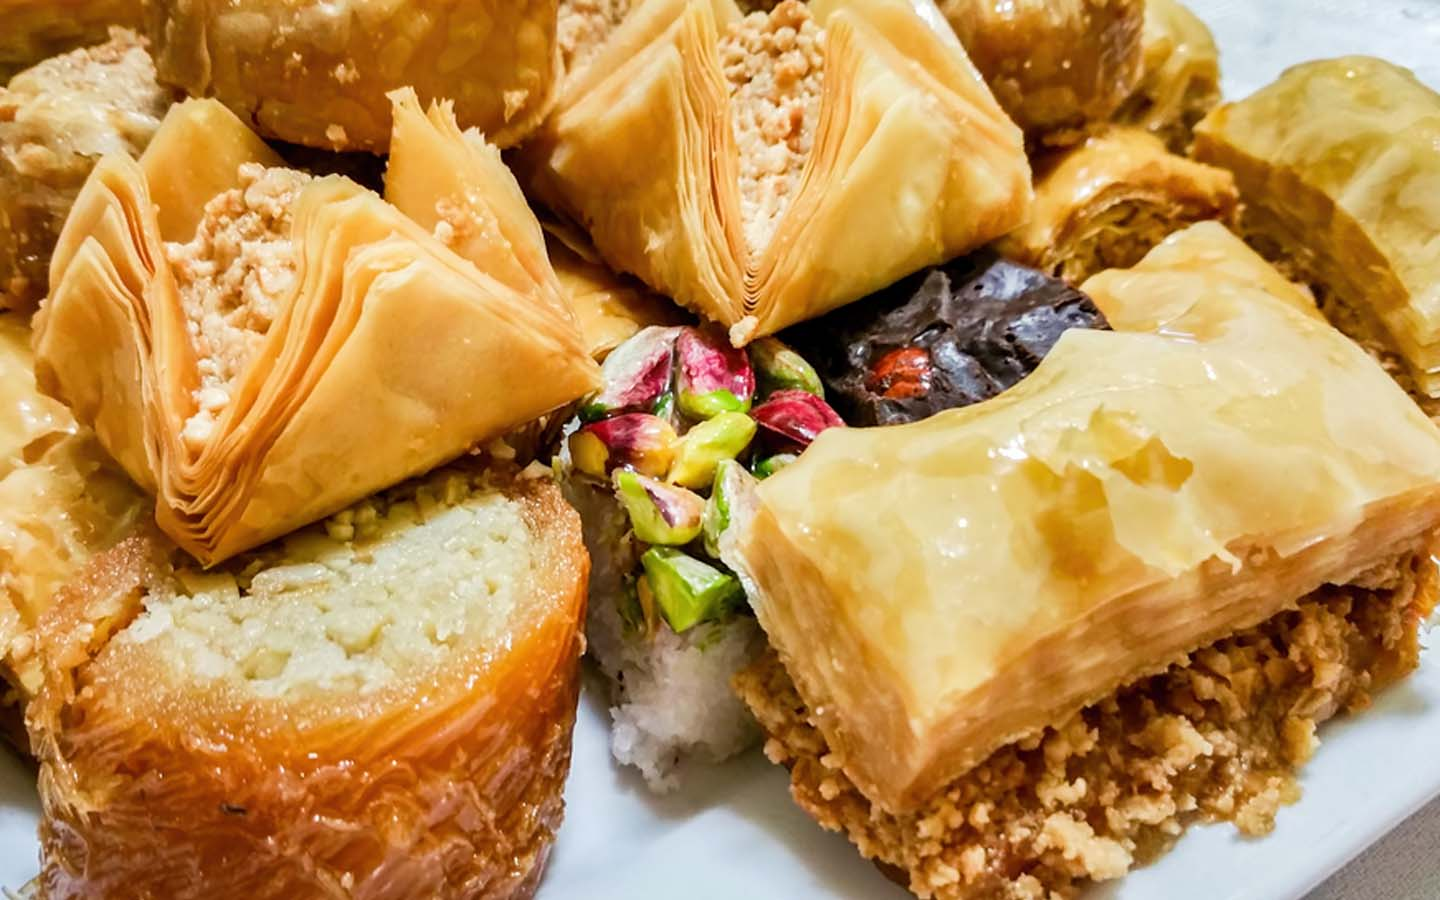 Baklava served in a plate